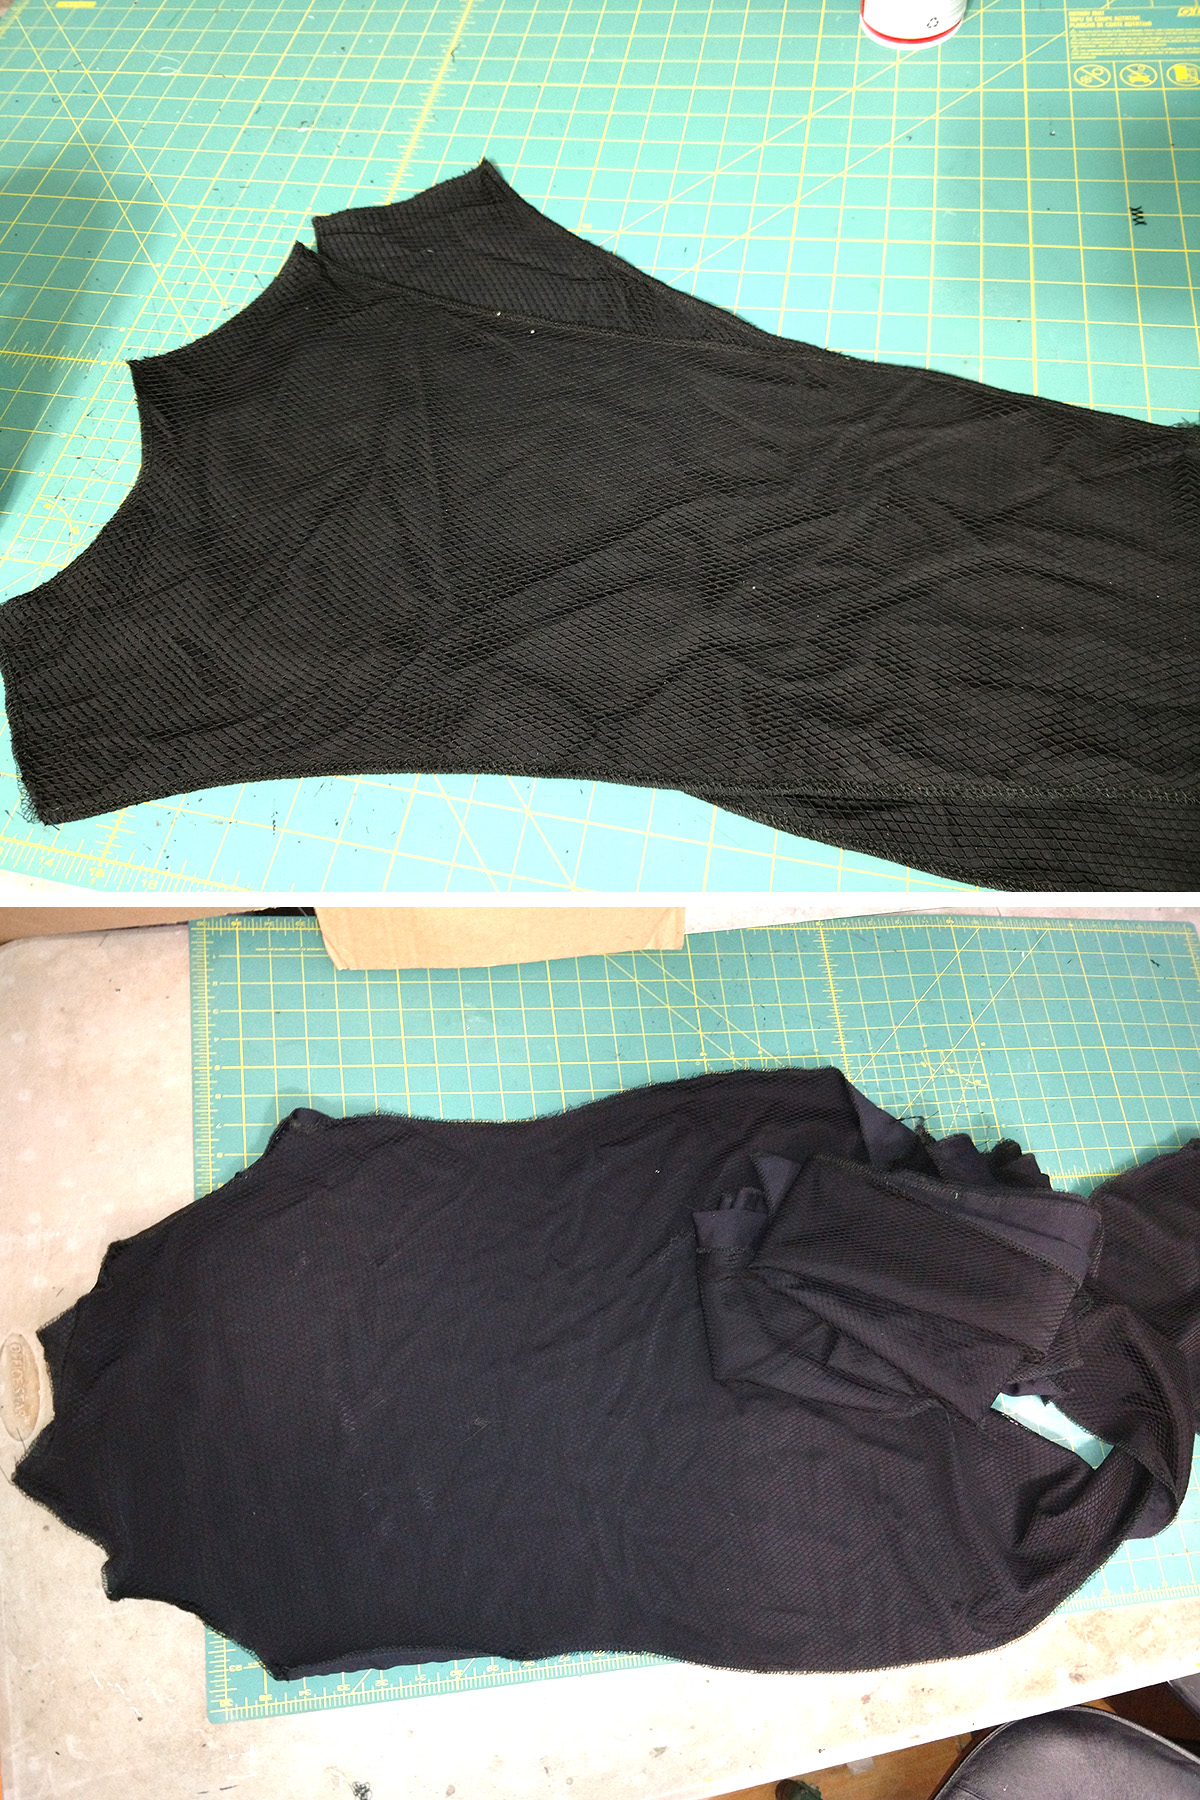 A two part compilation image showing two different pieces of the body suit, layered and stitched together as described in the post.